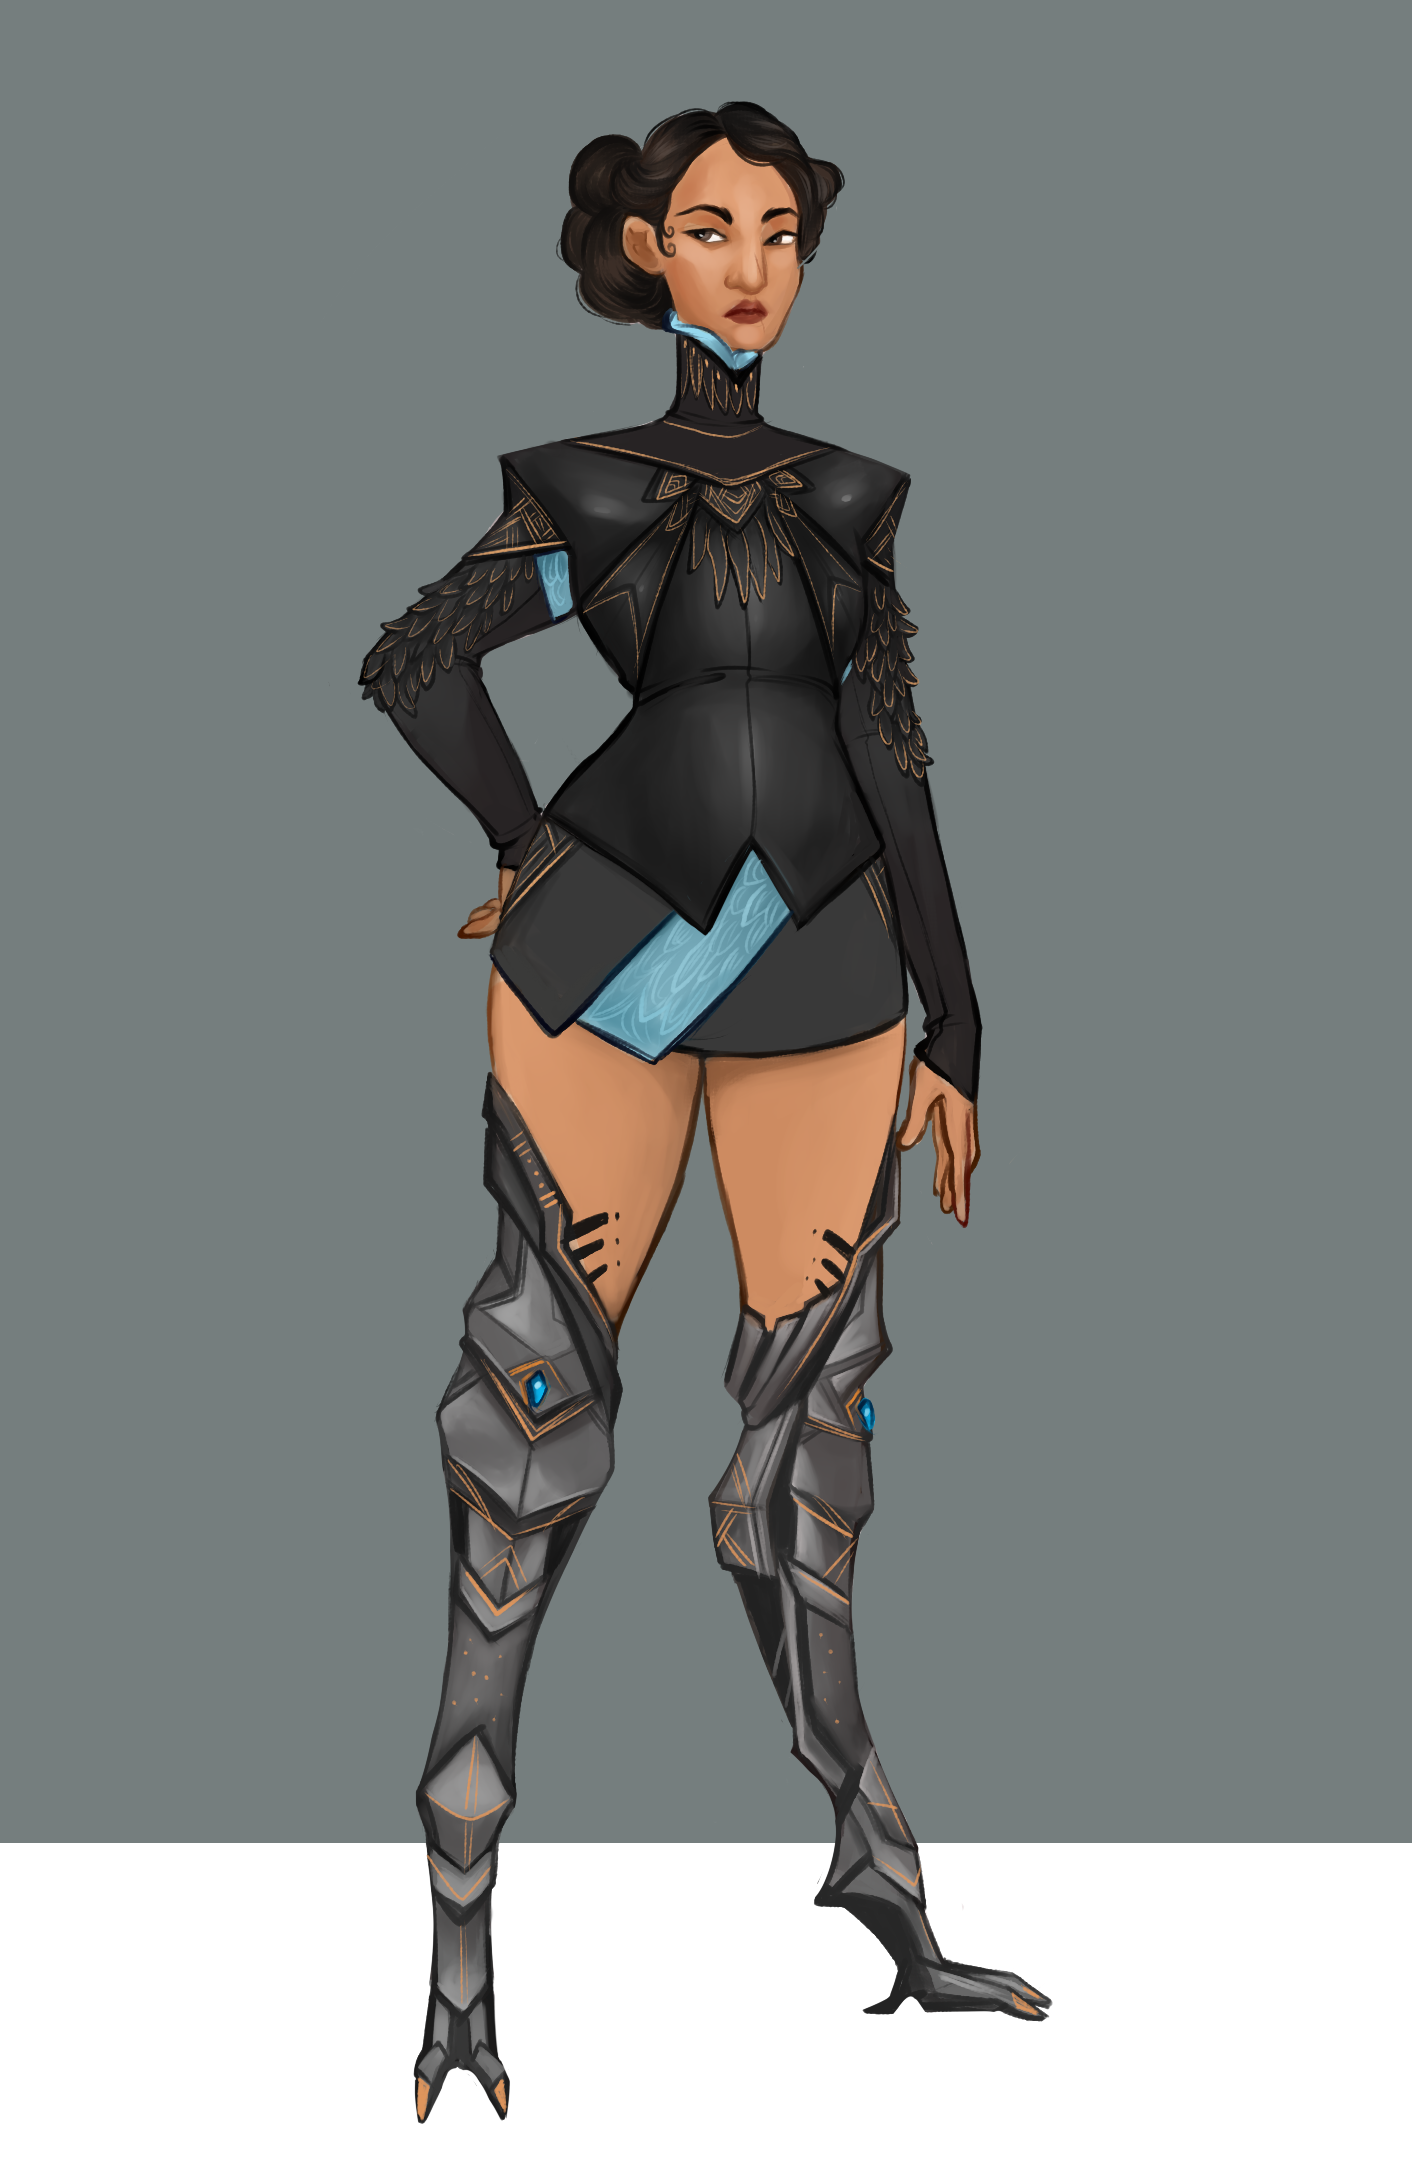 al_OutfitCommission.png